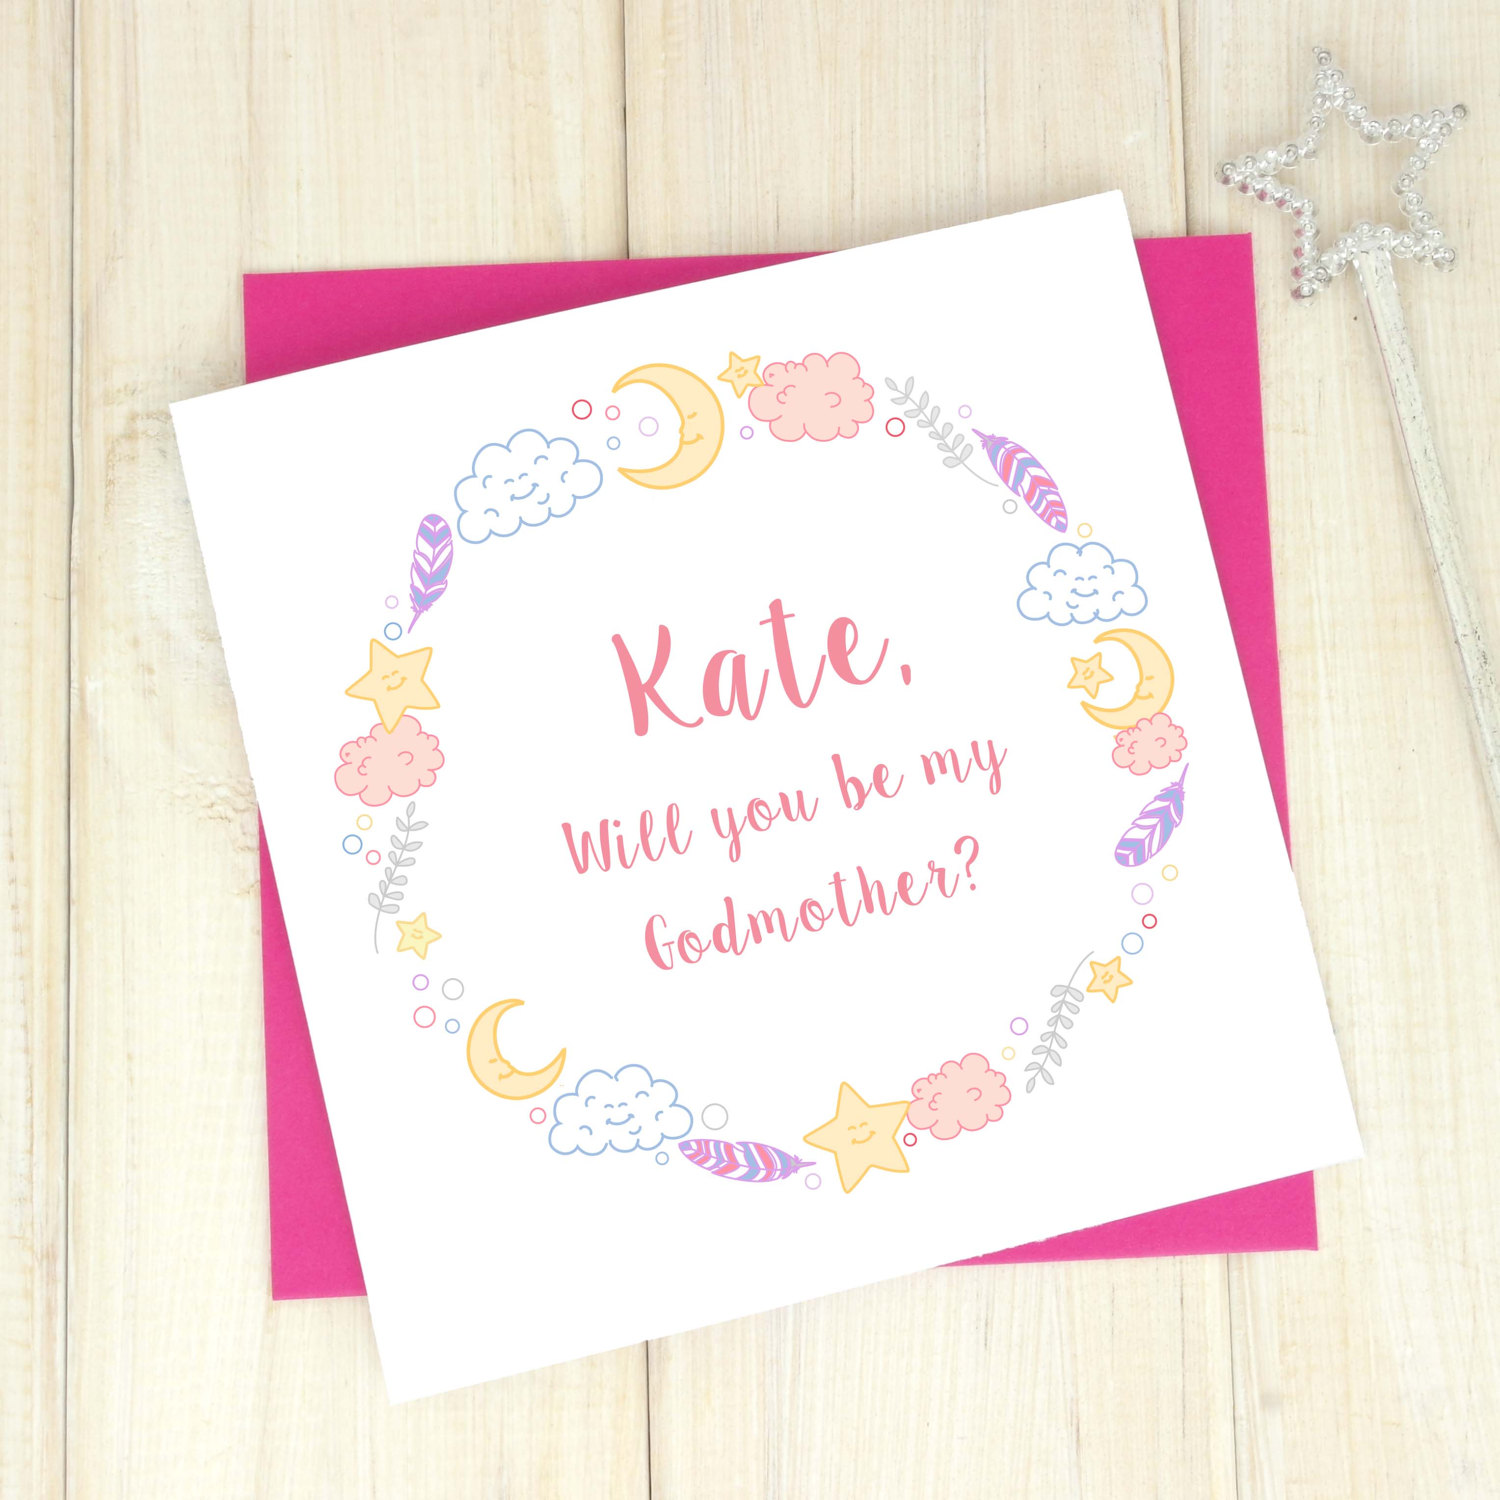 Will you be my godparent card personalised godparent christening will you be my godparent card personalised godparent christening card godparent baptism card godfather card godmother card m4hsunfo